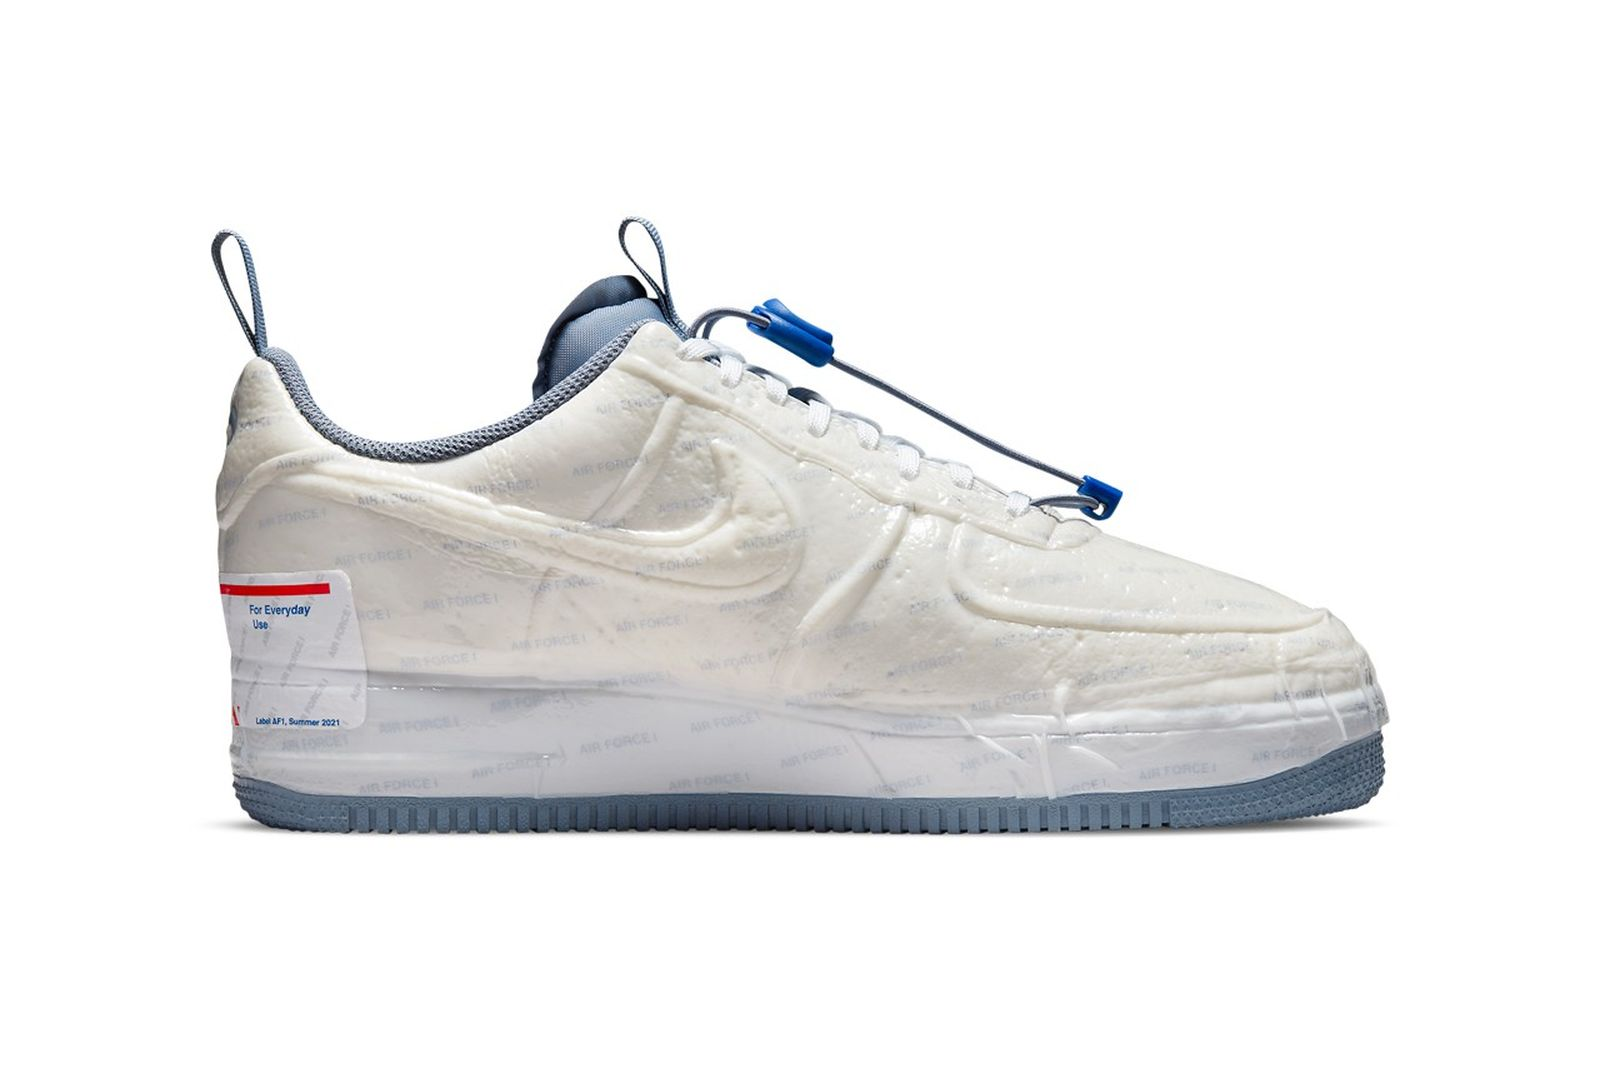 usps-nike-air-force-1-experimental-release-date-price-02